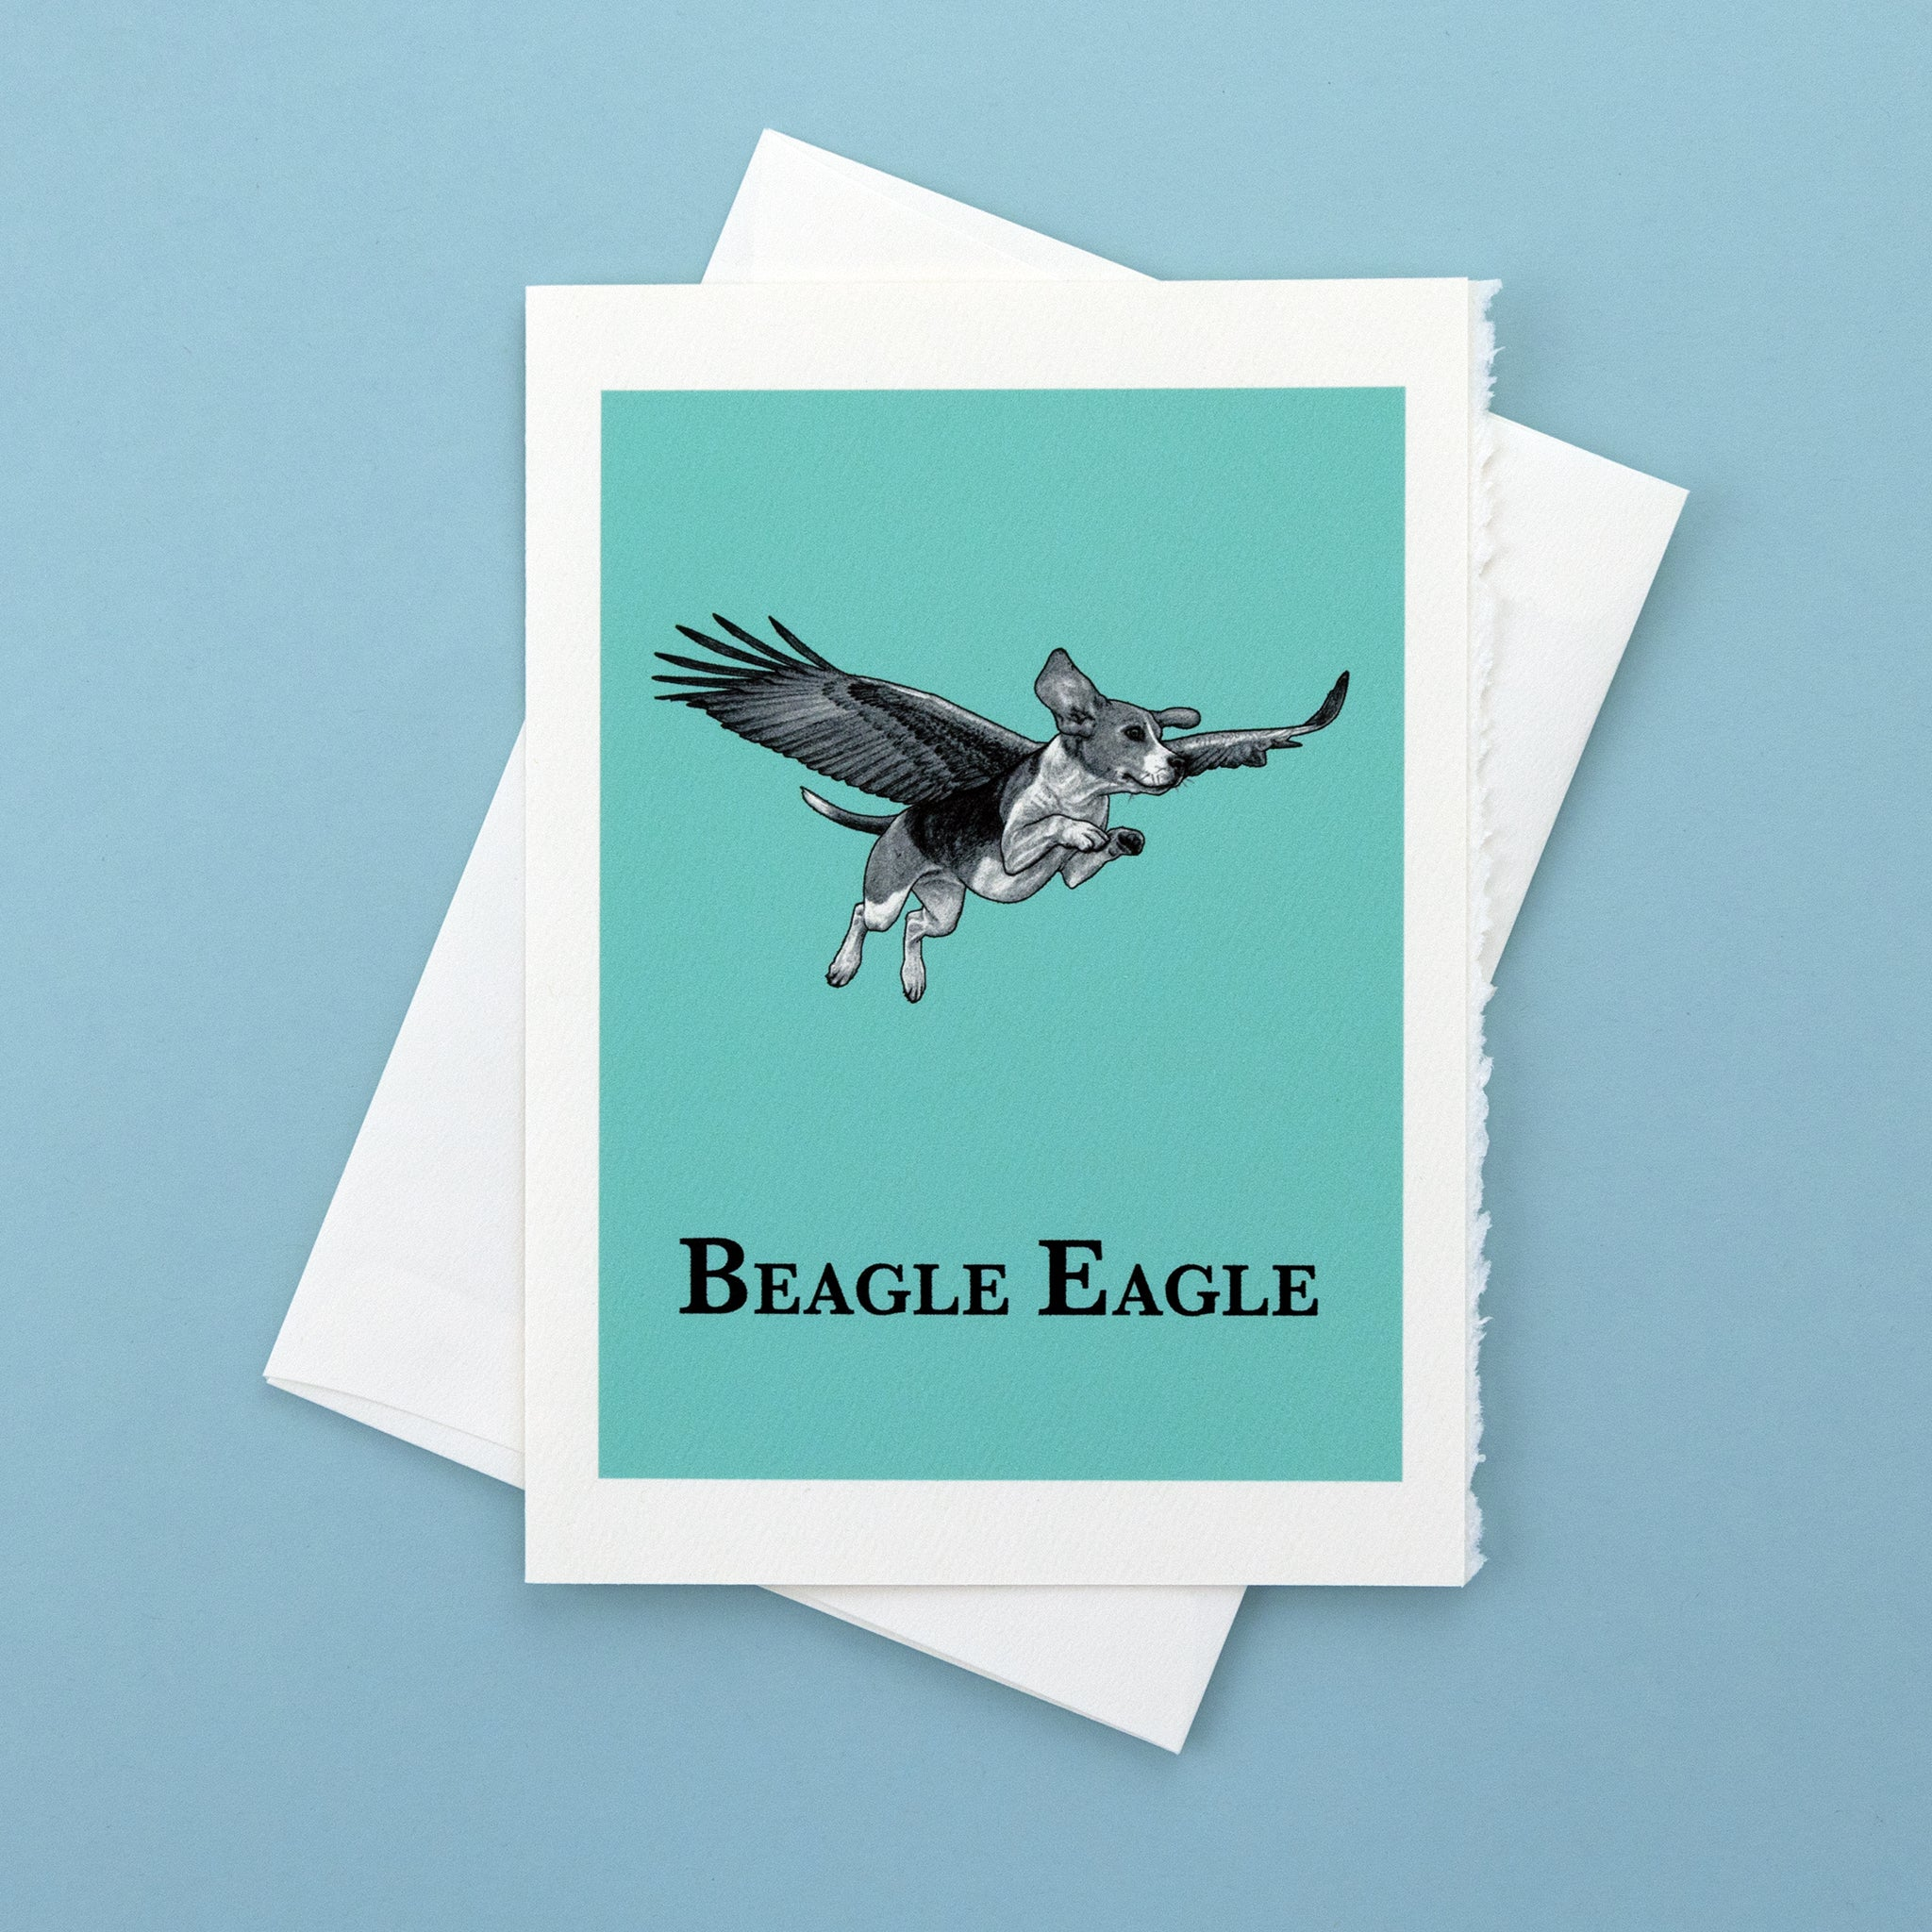 "Beagle Eagle 5x7"" Greeting Card"